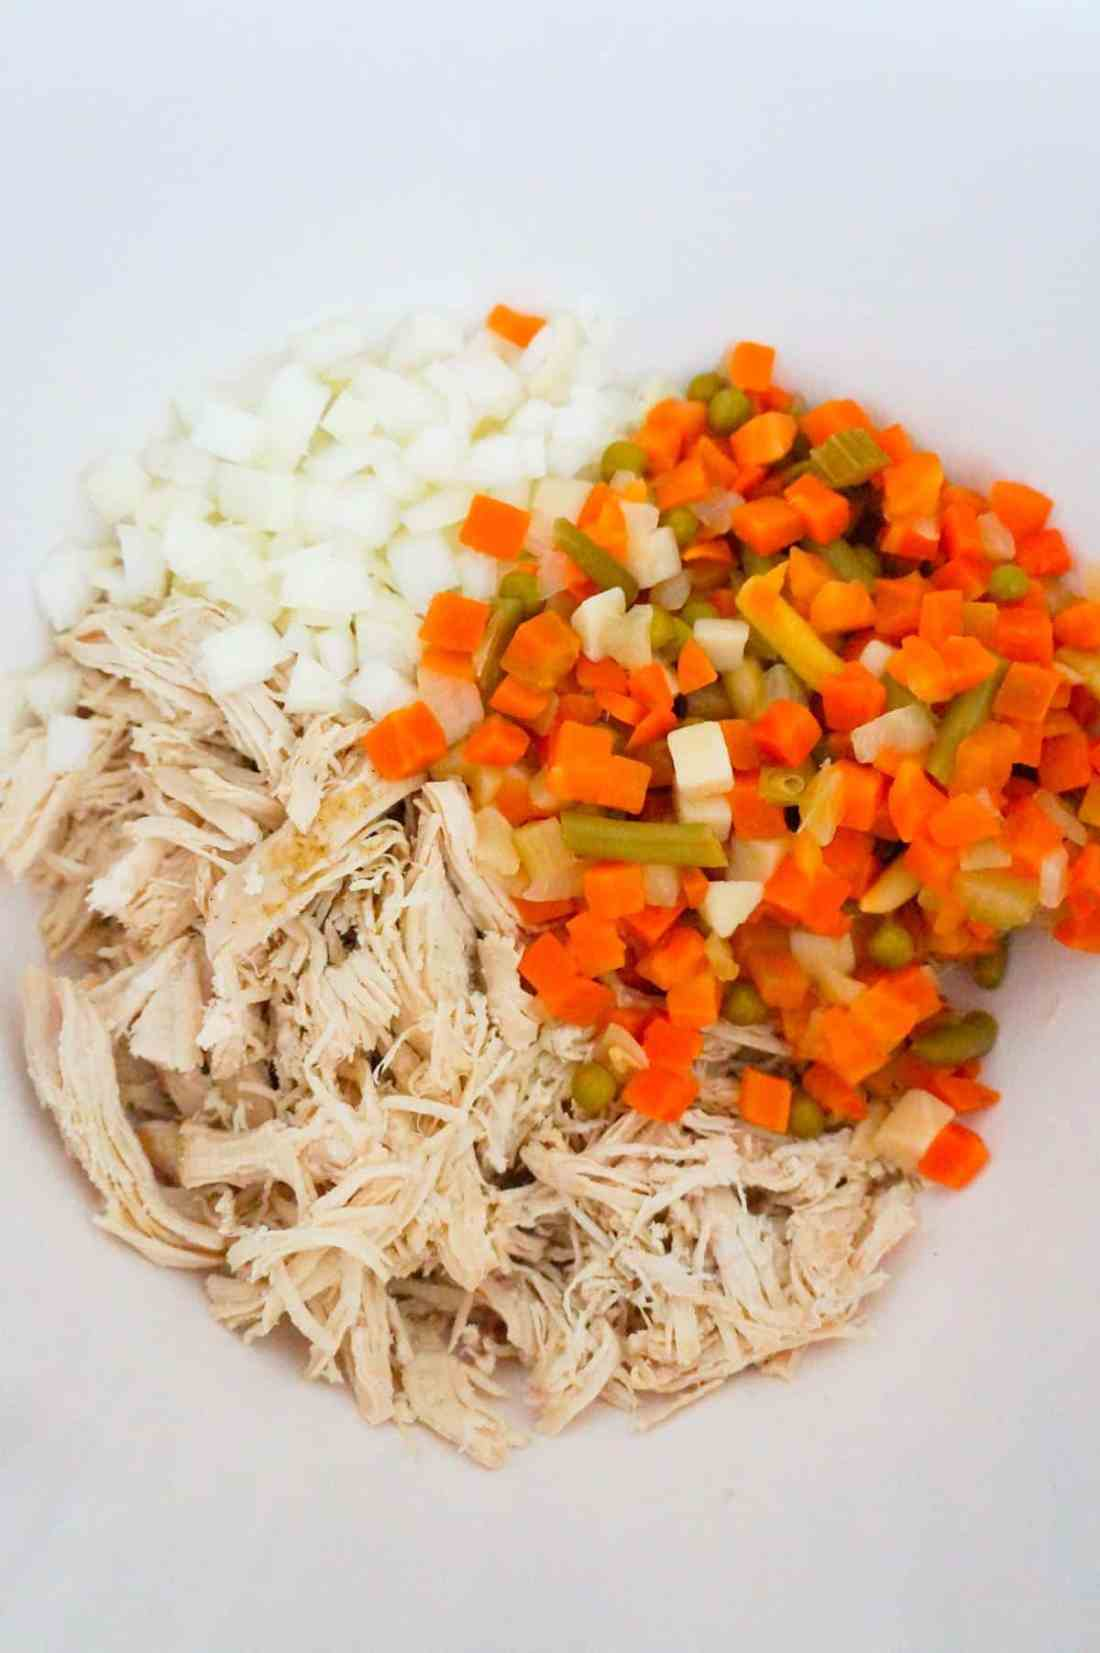 shredded chicken, diced onions and mixed veggies in a mixing bowl